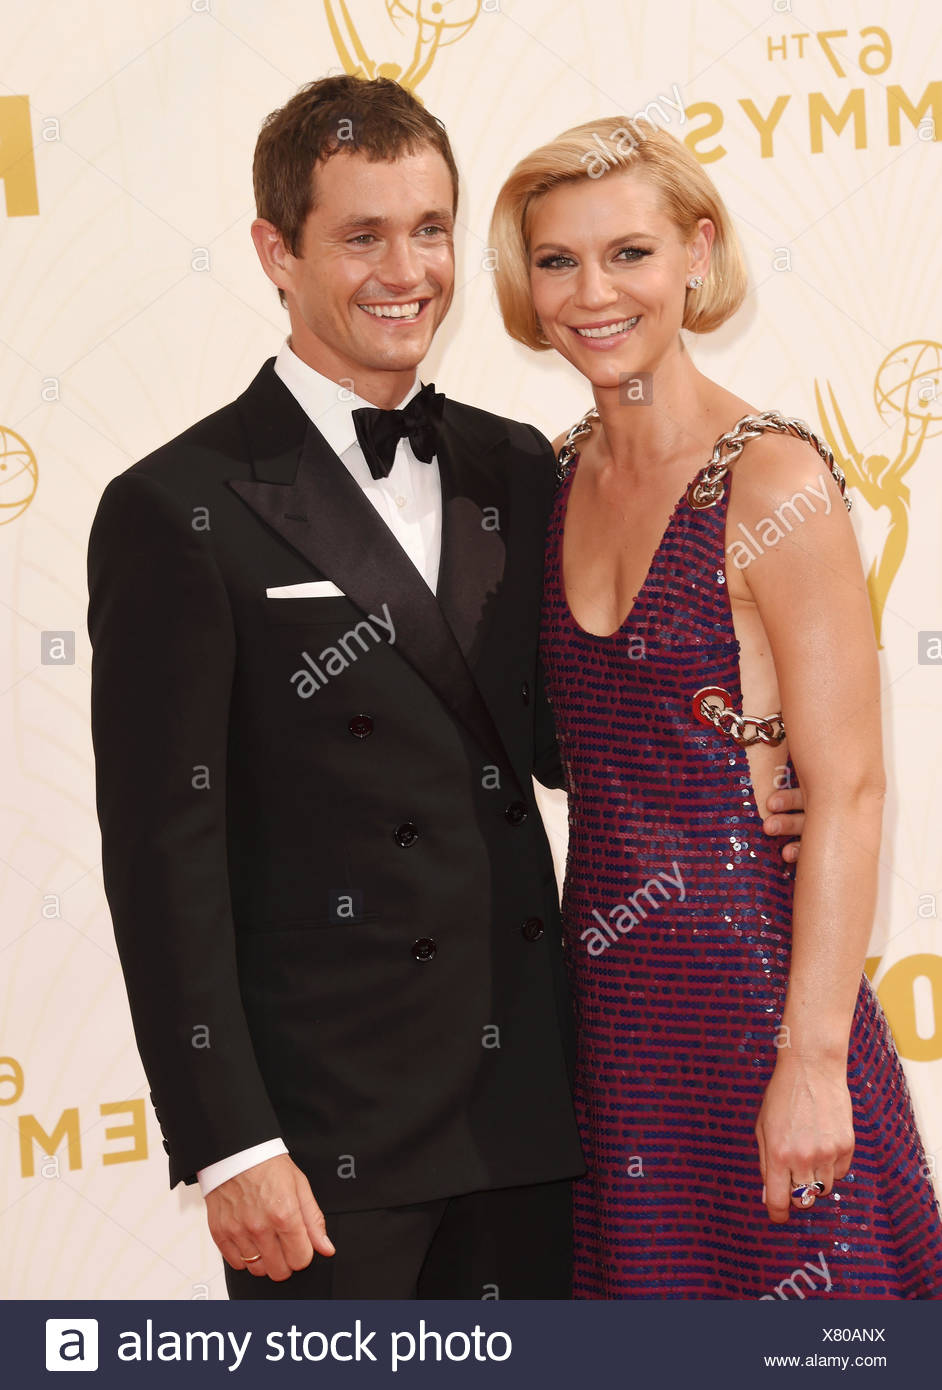 Actors Claire Danes (L) and Hugh Dancy attend the 67th Annual Primetime Emmy Awards at Microsoft Theater on September 20, 2015 in Los Angeles, California., Additional-Rights-Clearances-NA - Stock Image